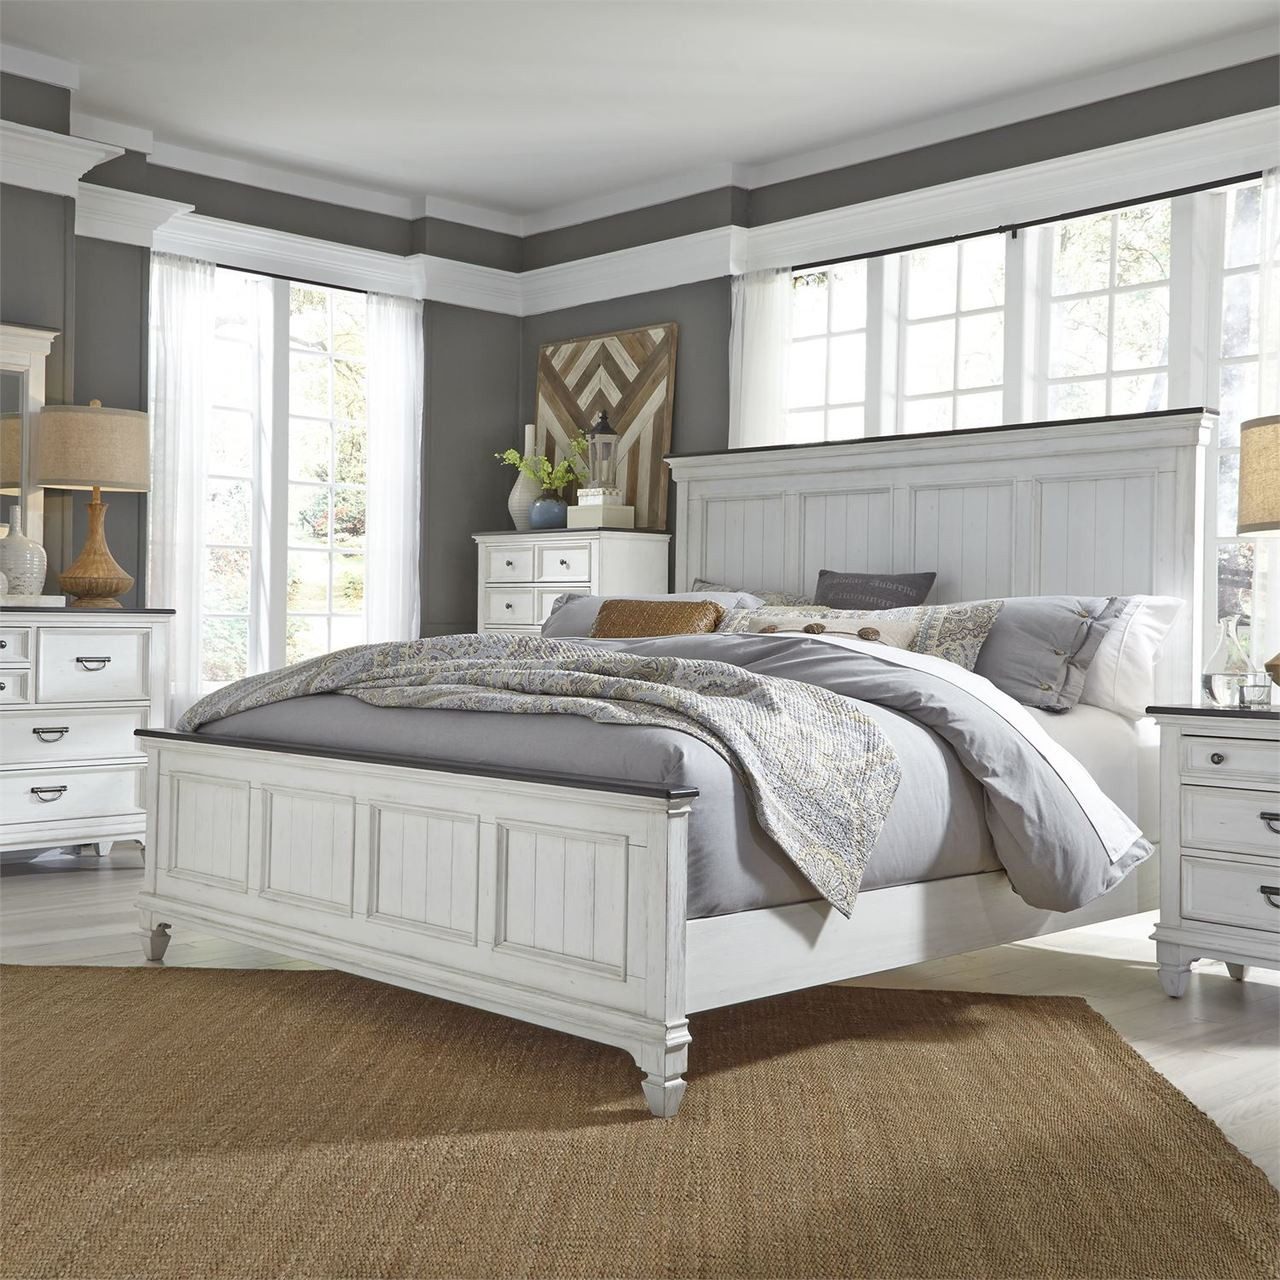 Cottage Bedroom Set FREE SHIPPING